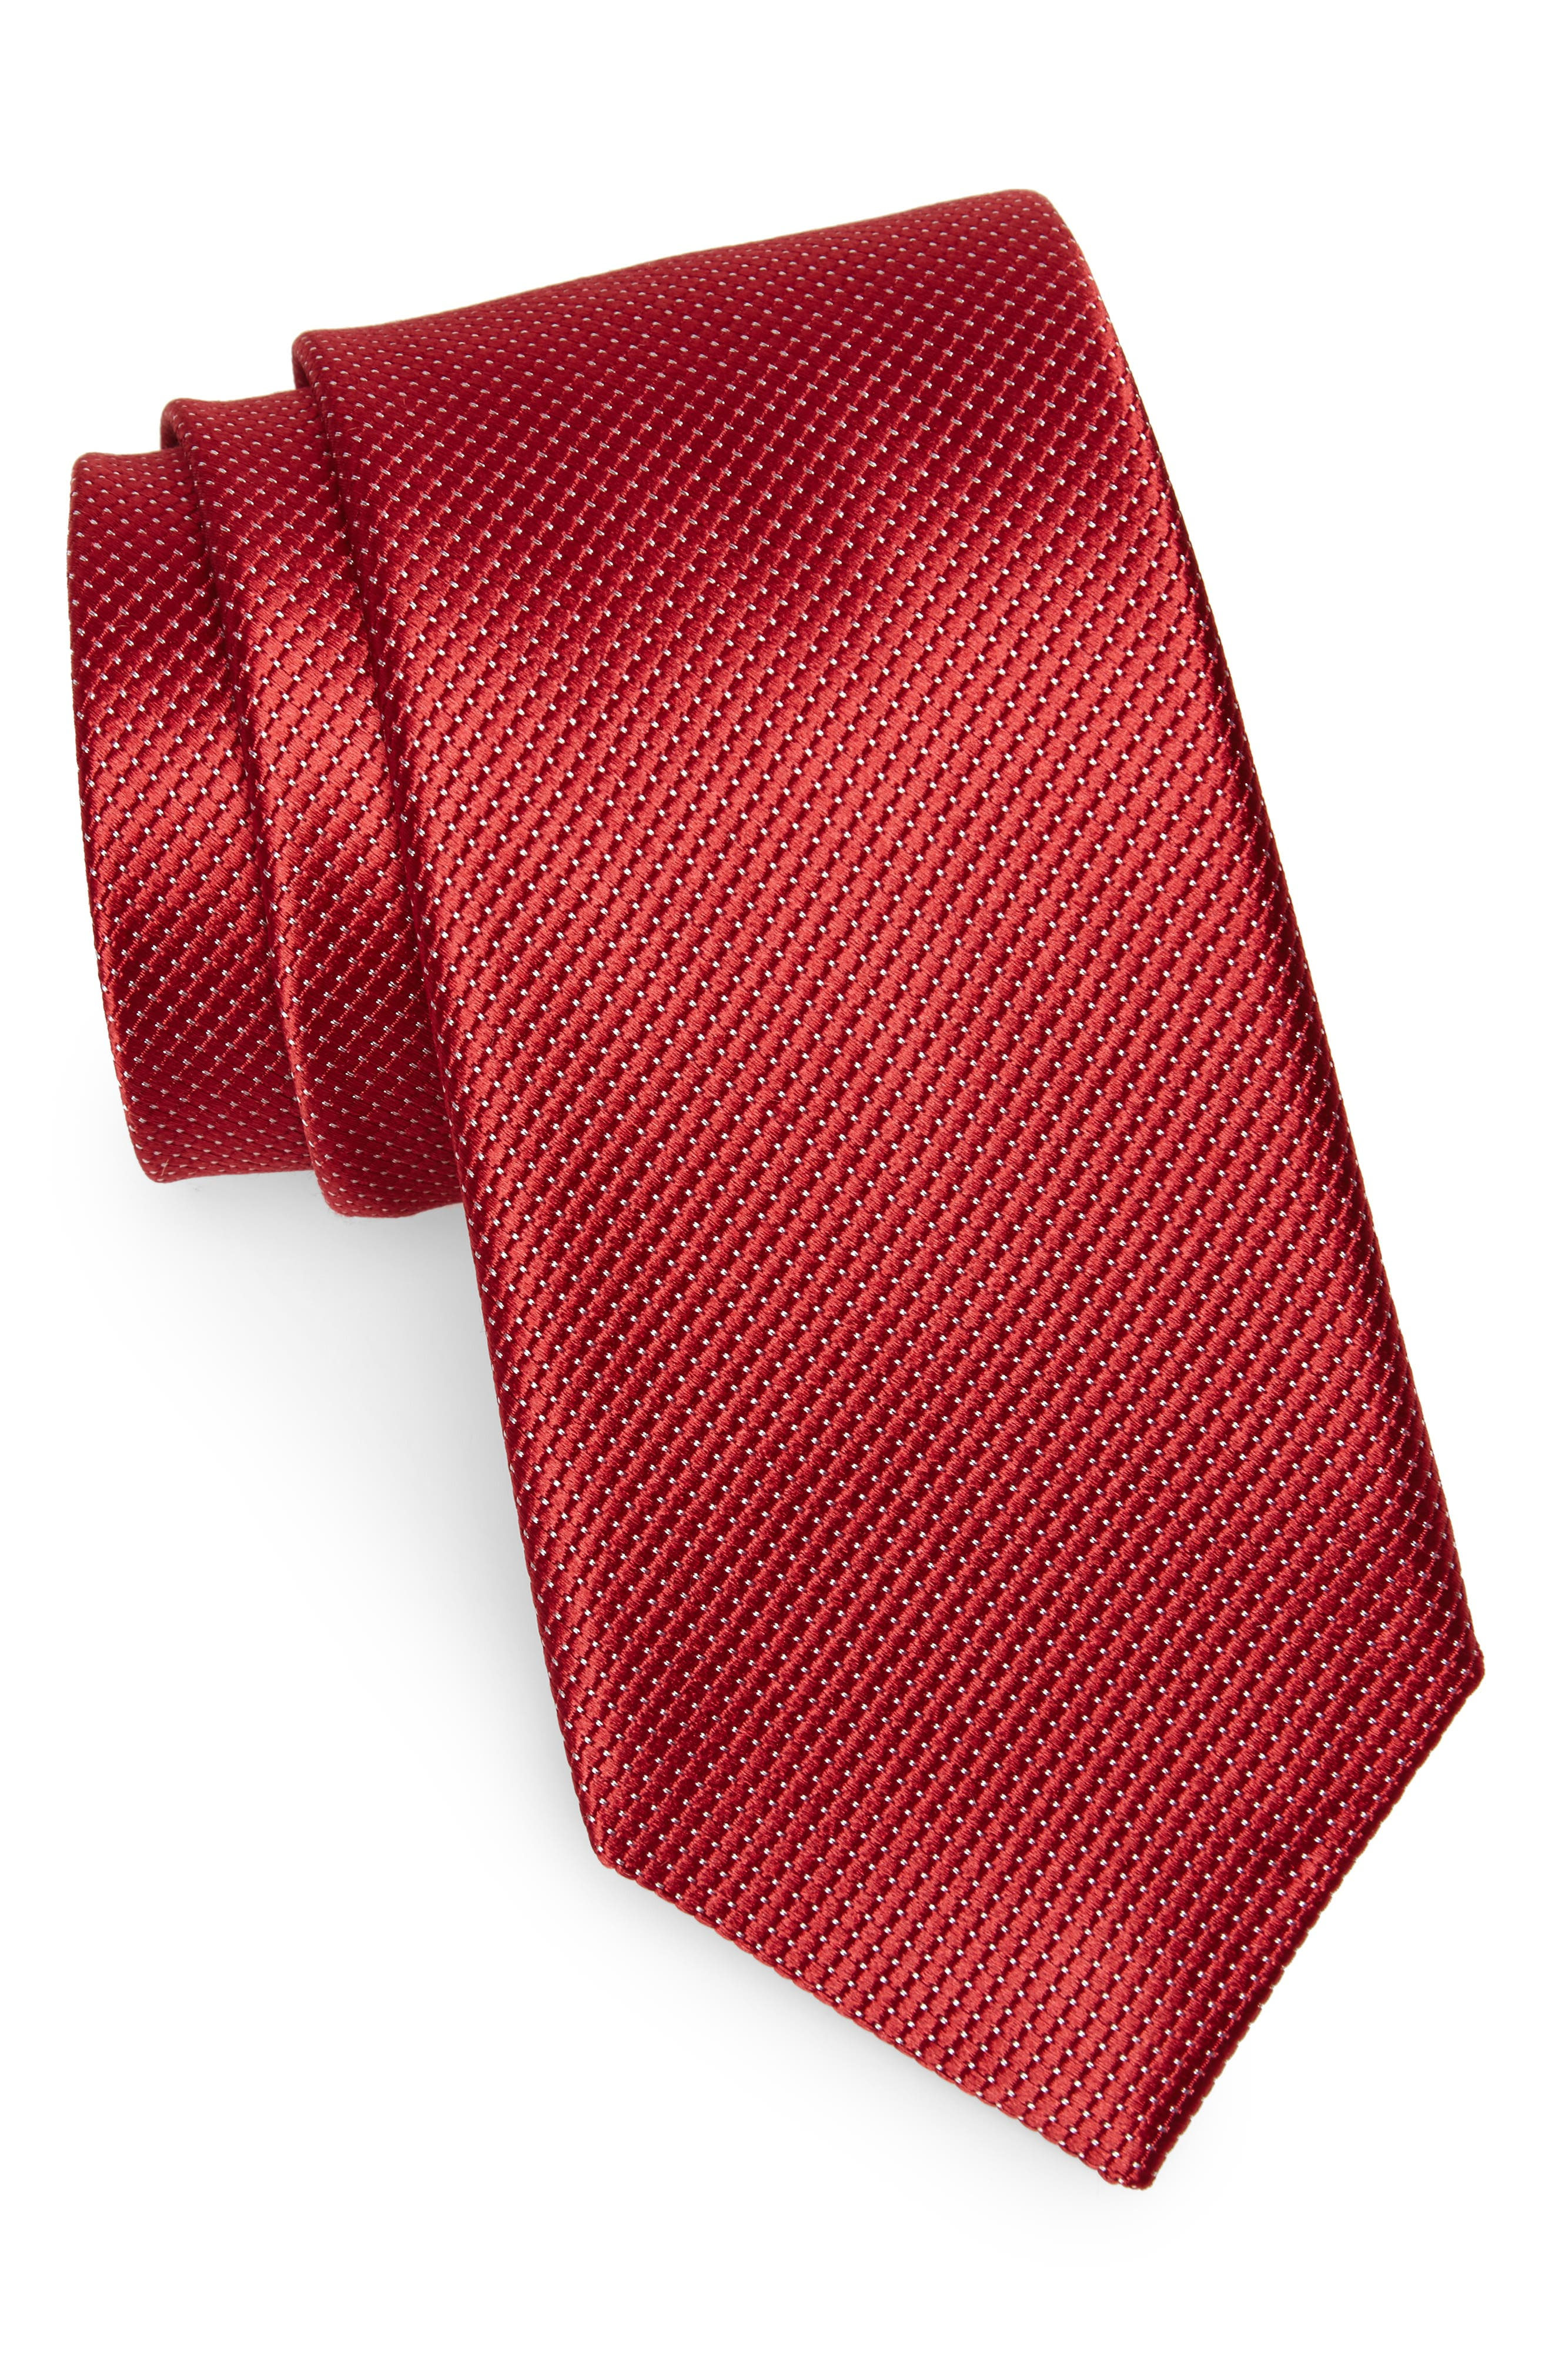 Alternate Image 1 Selected - Nordstrom Men's Shop Vendôme Dot Silk Tie